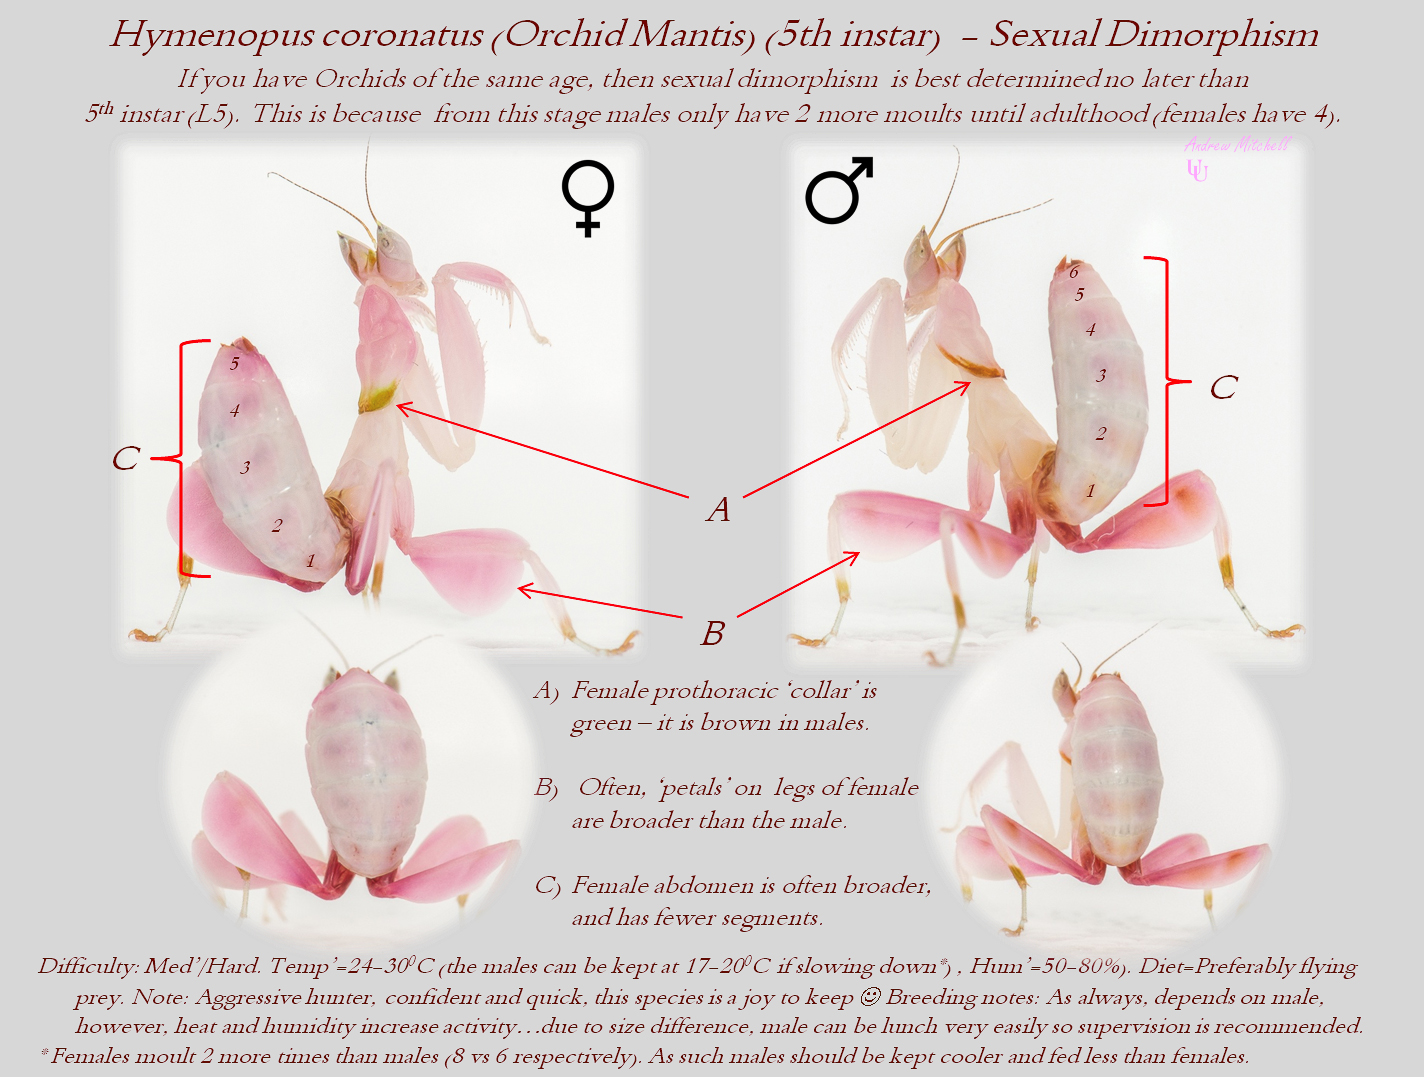 Hymenopus coronatus (Orchid Mantis) (5th instar - Sexual dimorphism)